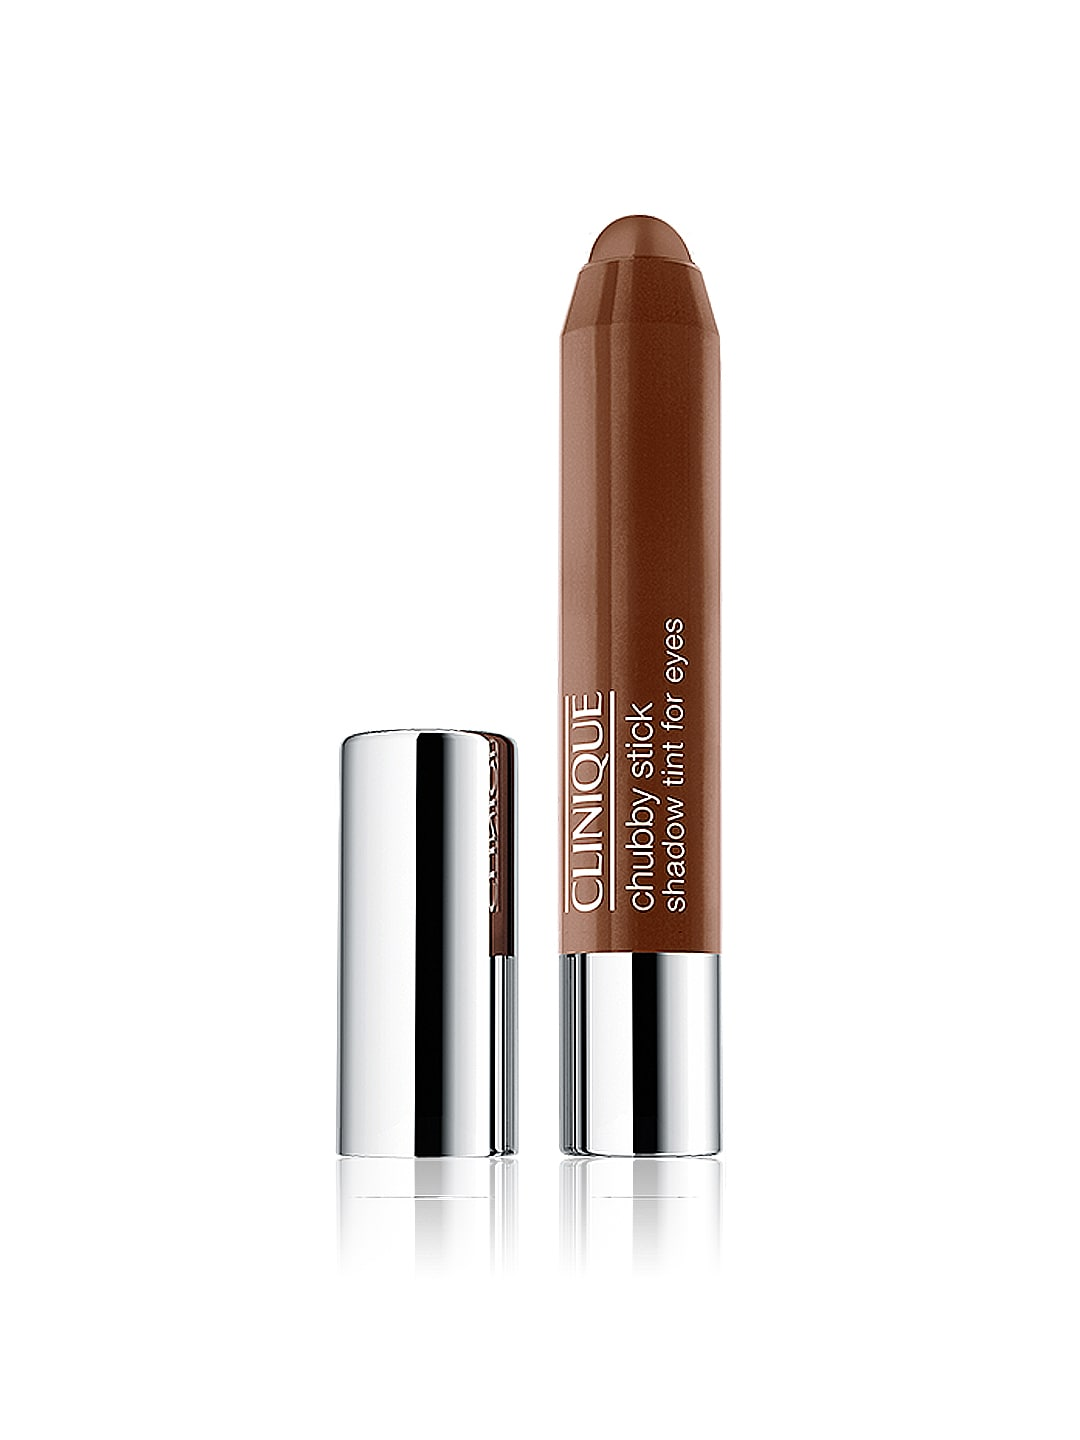 Clinique Fuller Fudge Chubby Stick Shadow Tint For Eyes image